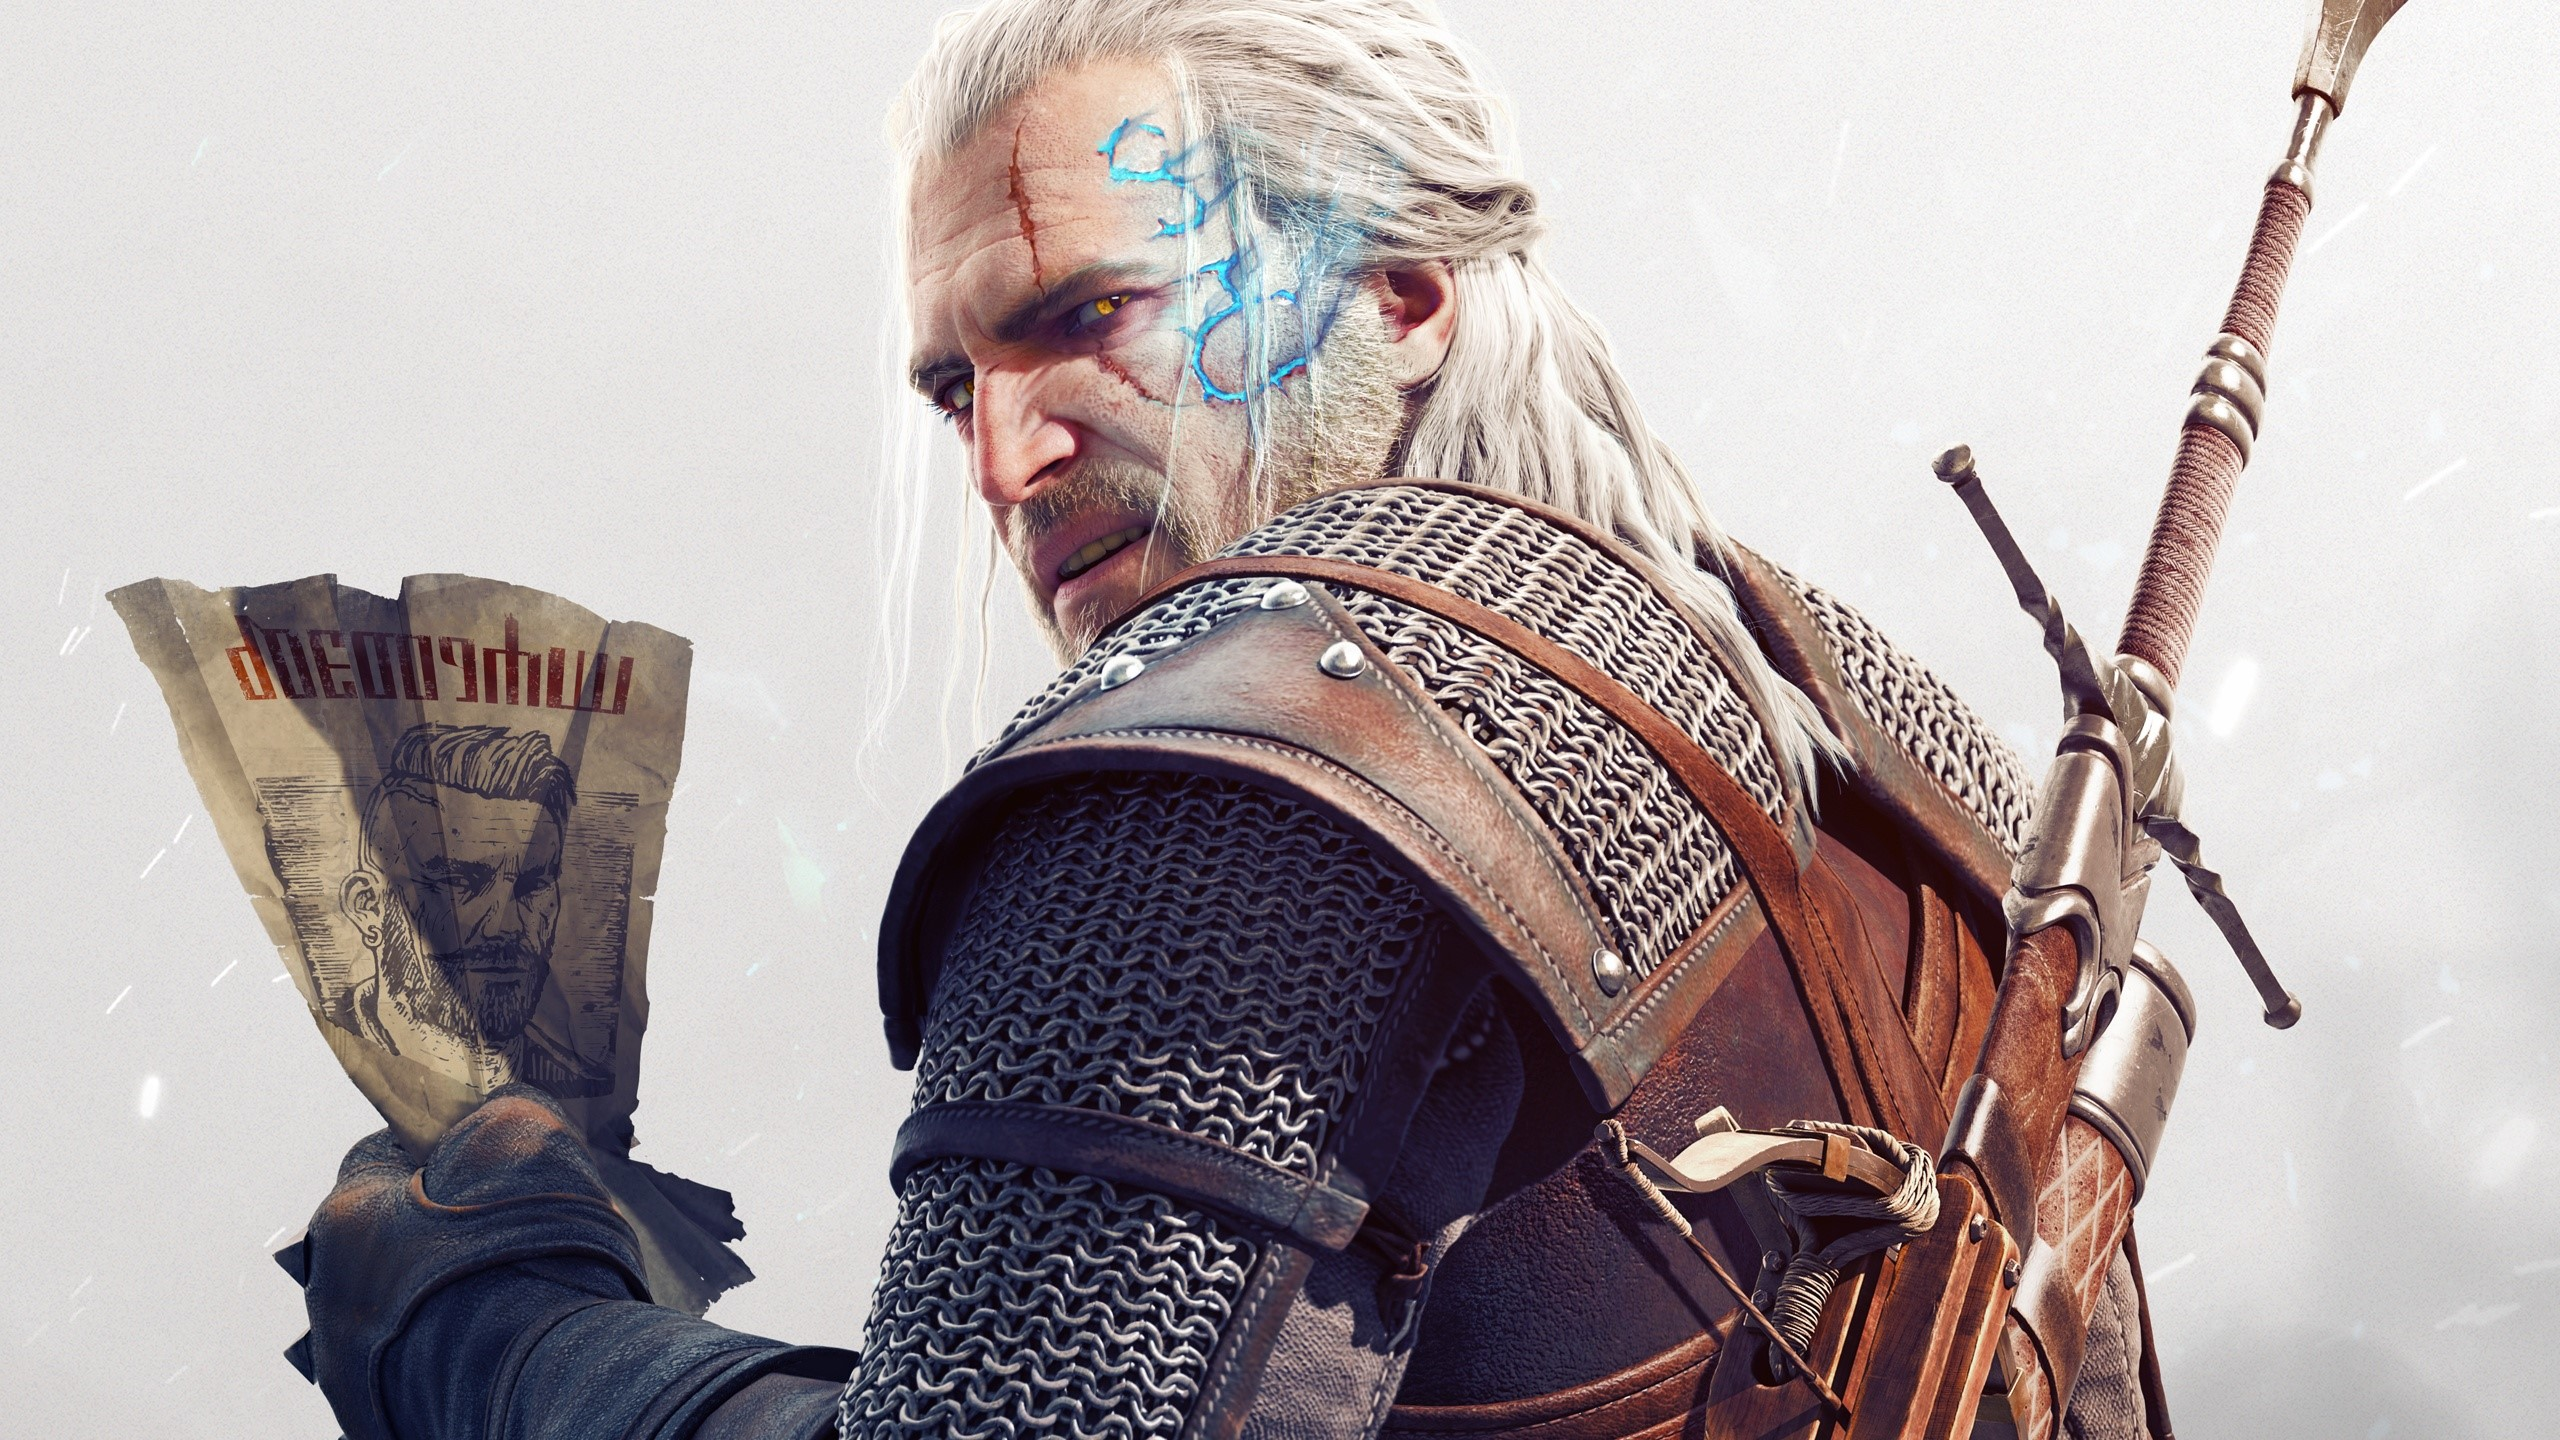 Wallpaper Geralt from The Witcher 3